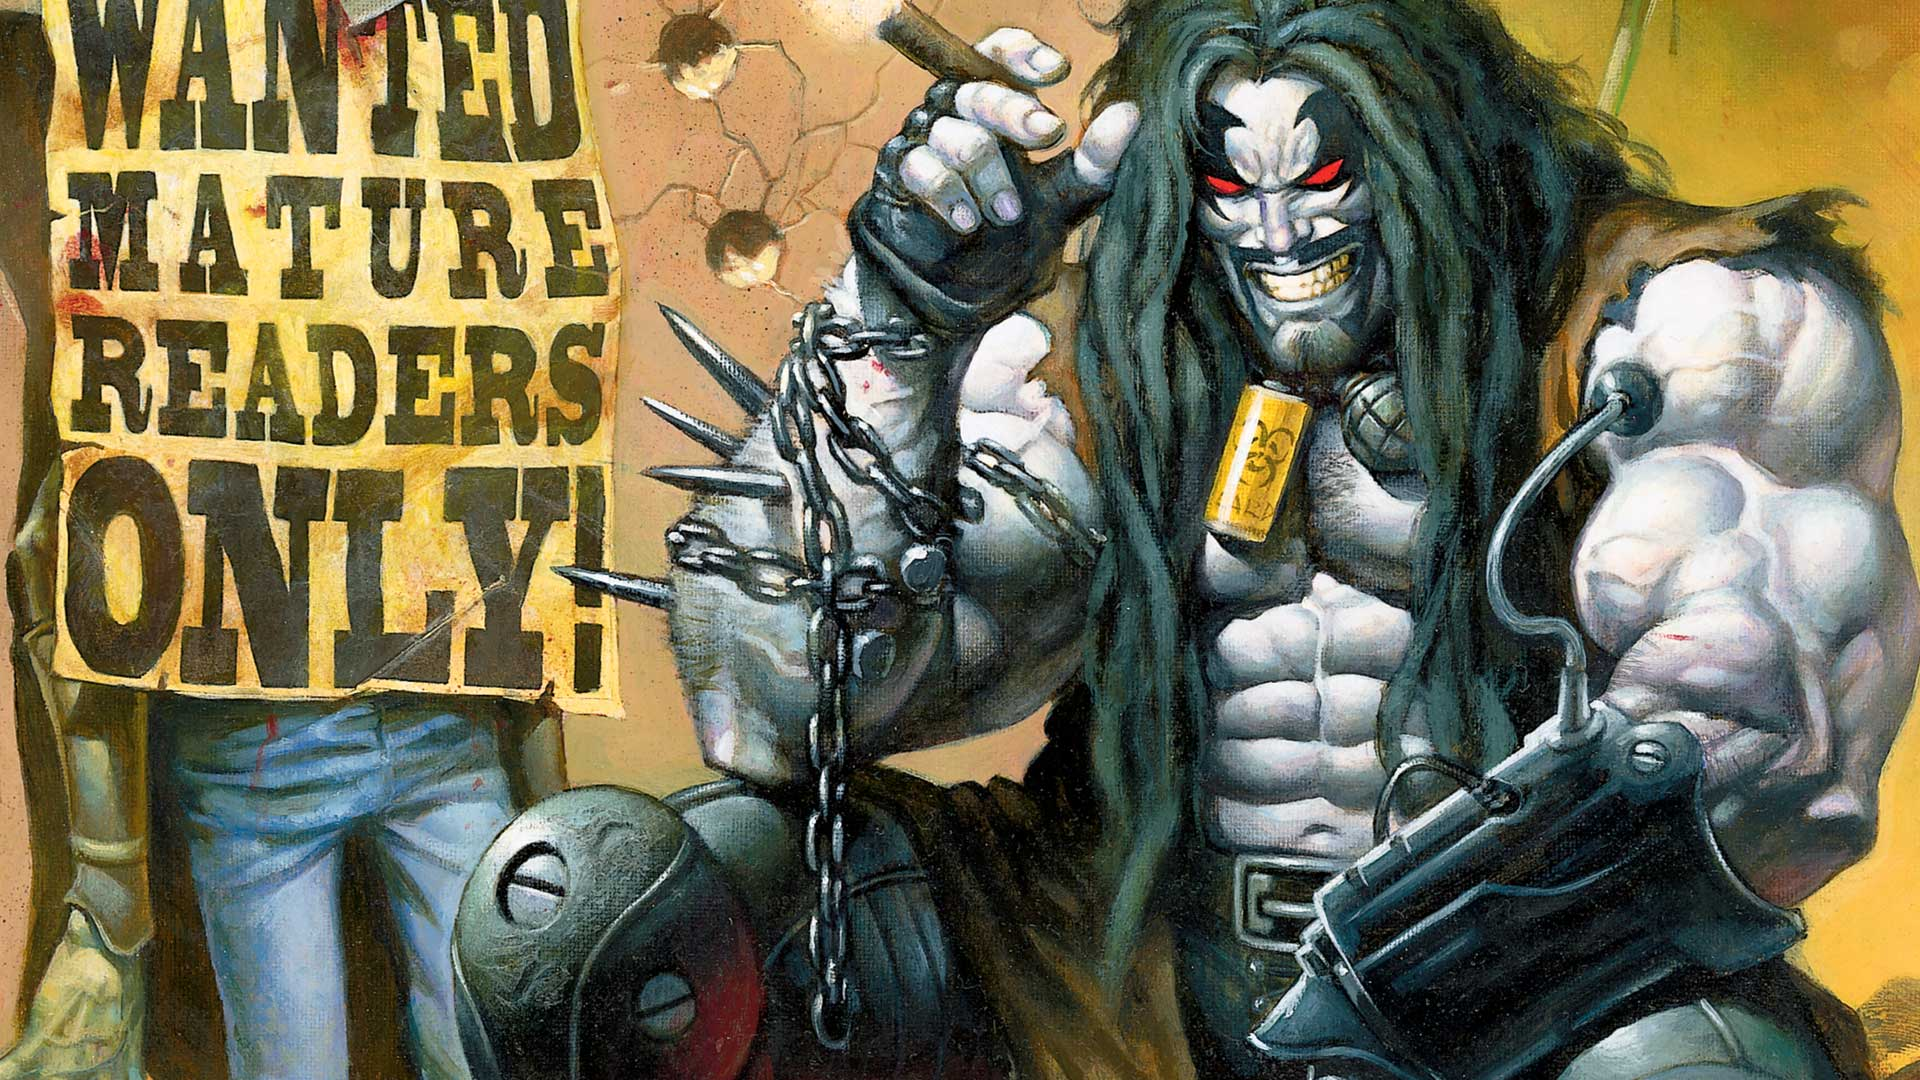 Wonder Woman Writer Moves Forward With Lobo Film